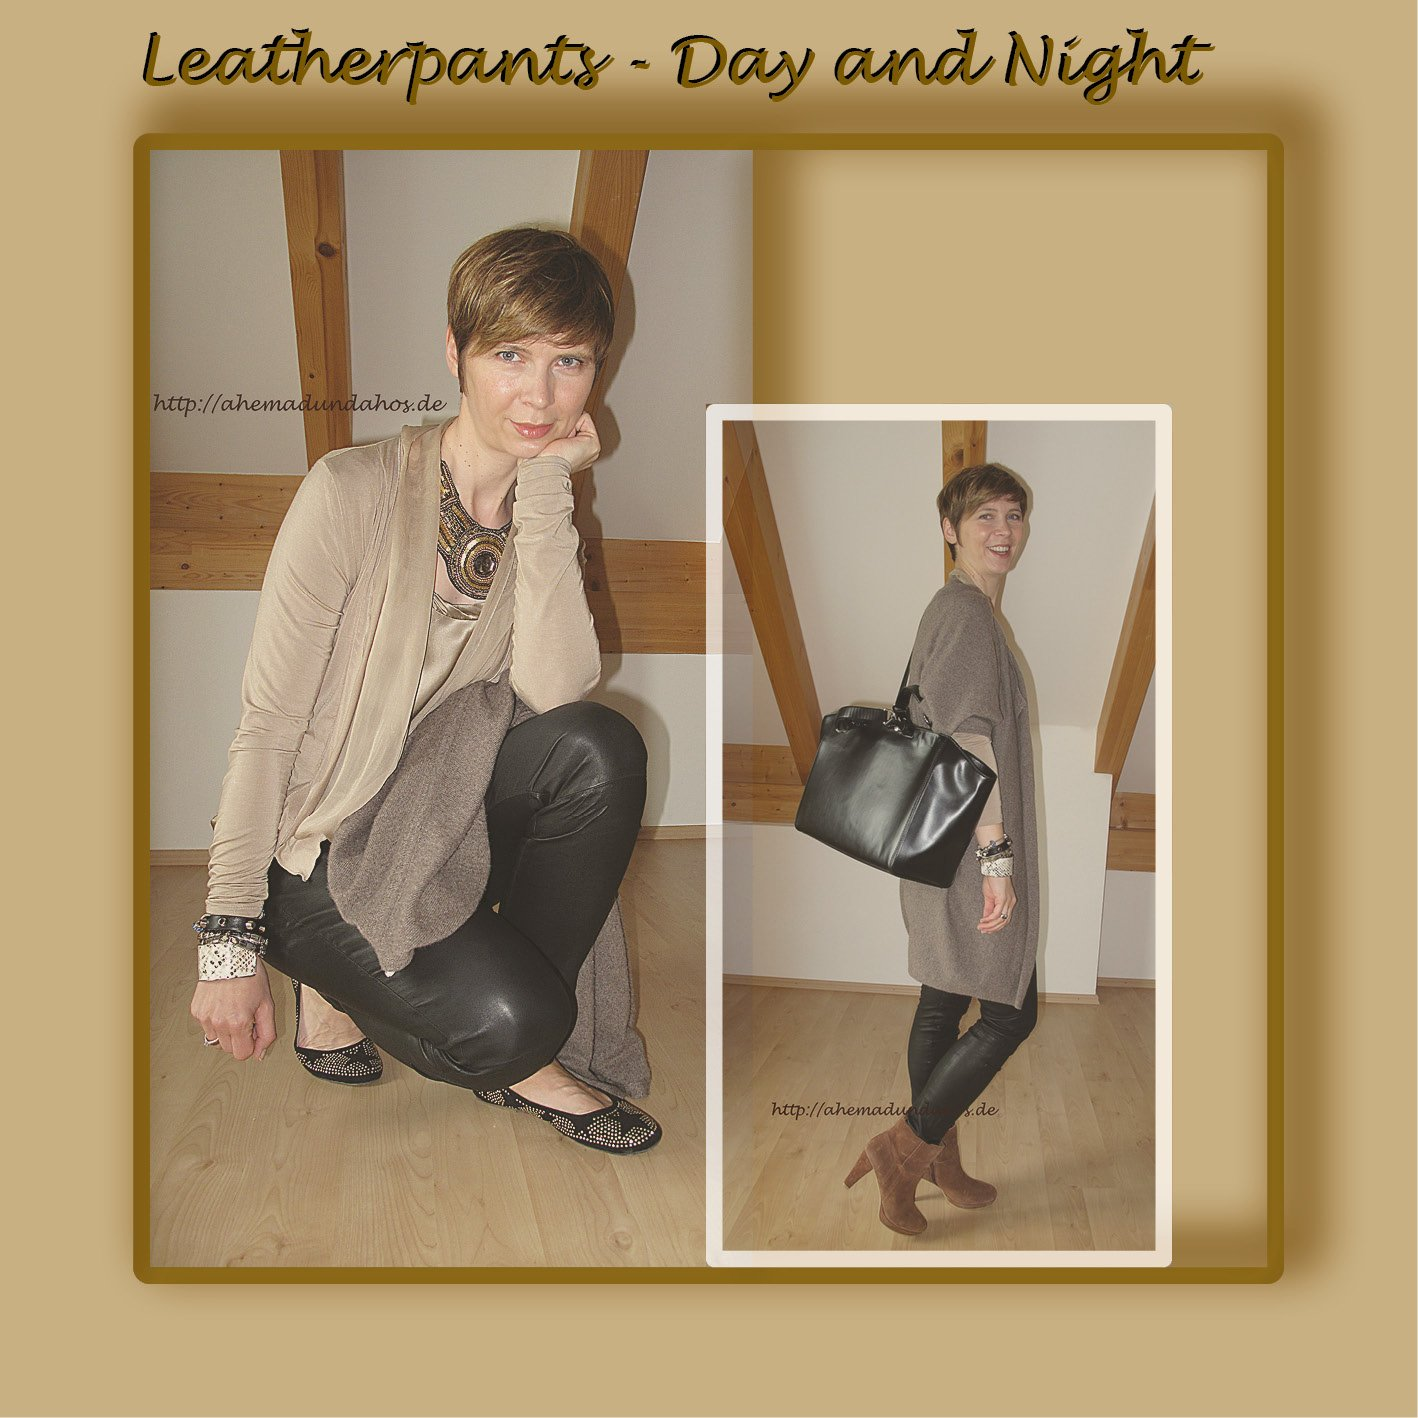 Leatherpants - Day and Night